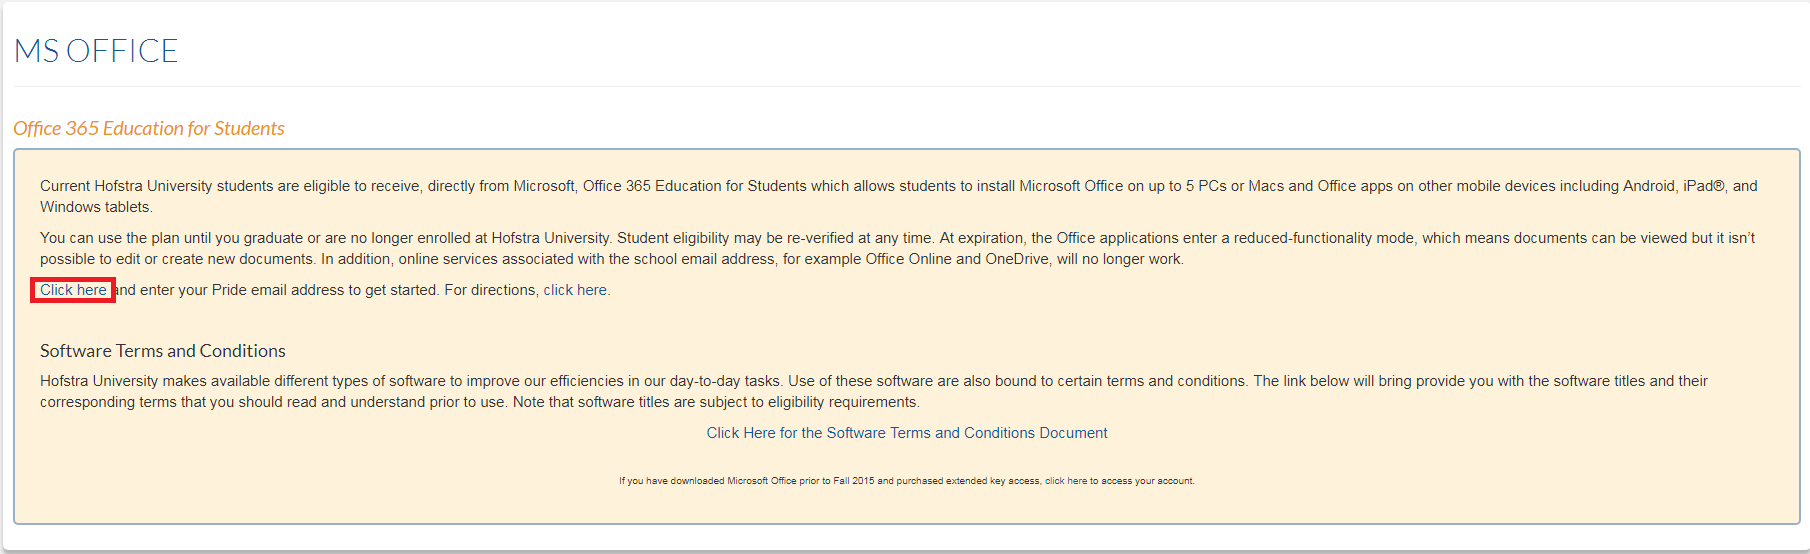 How to get Microsoft Office from the Hofstra Portal | Computer Science